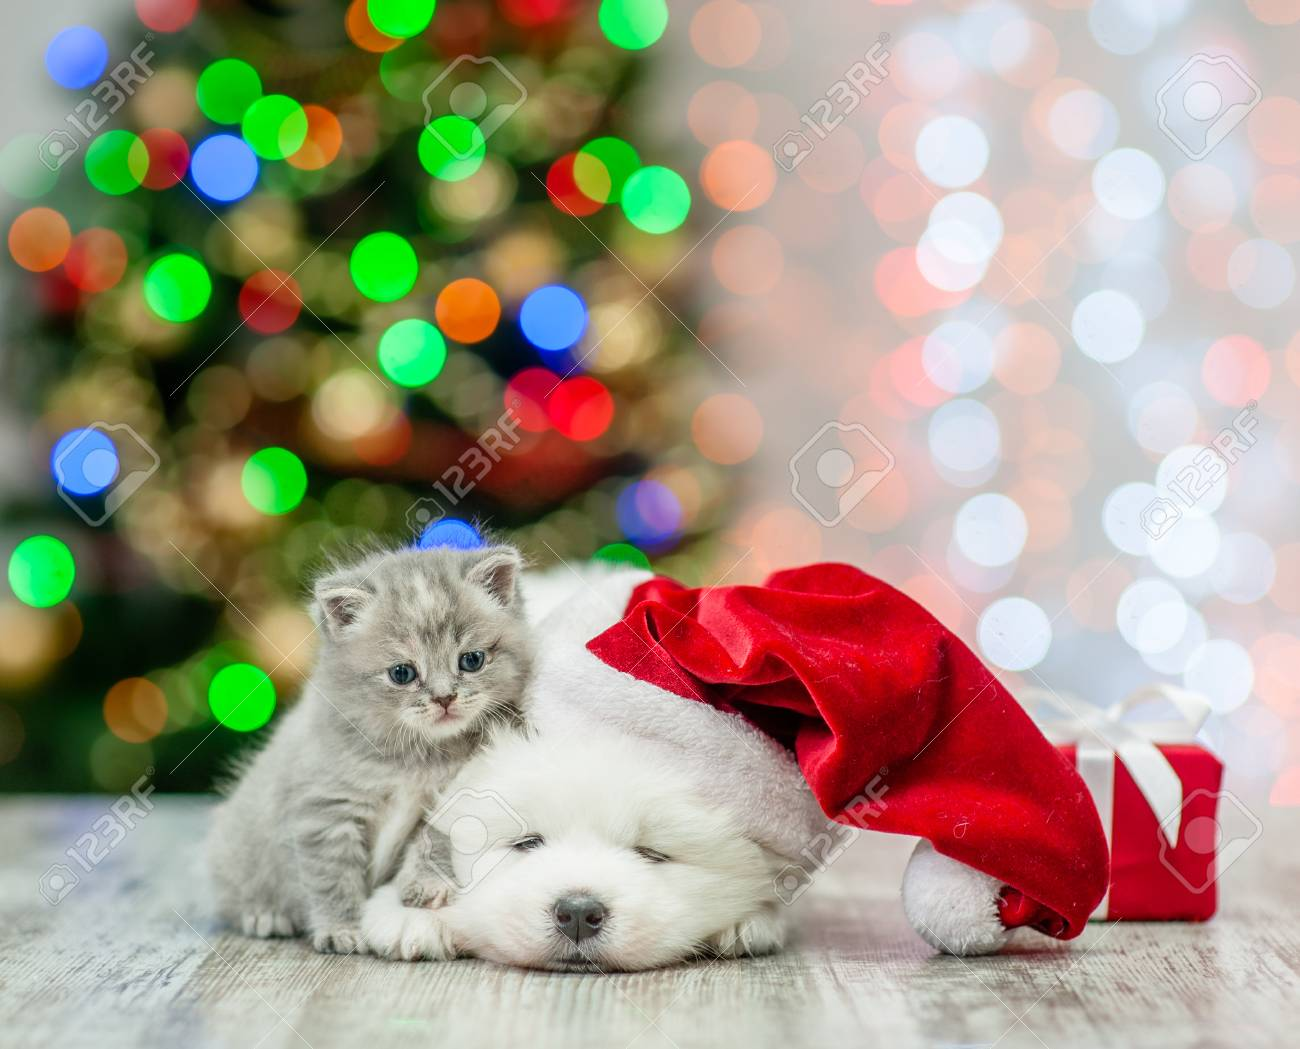 Baby Kitten And Samoyed Puppy In Red Santa Hat With Gift Box Stock Photo Picture And Royalty Free Image Image 93332434